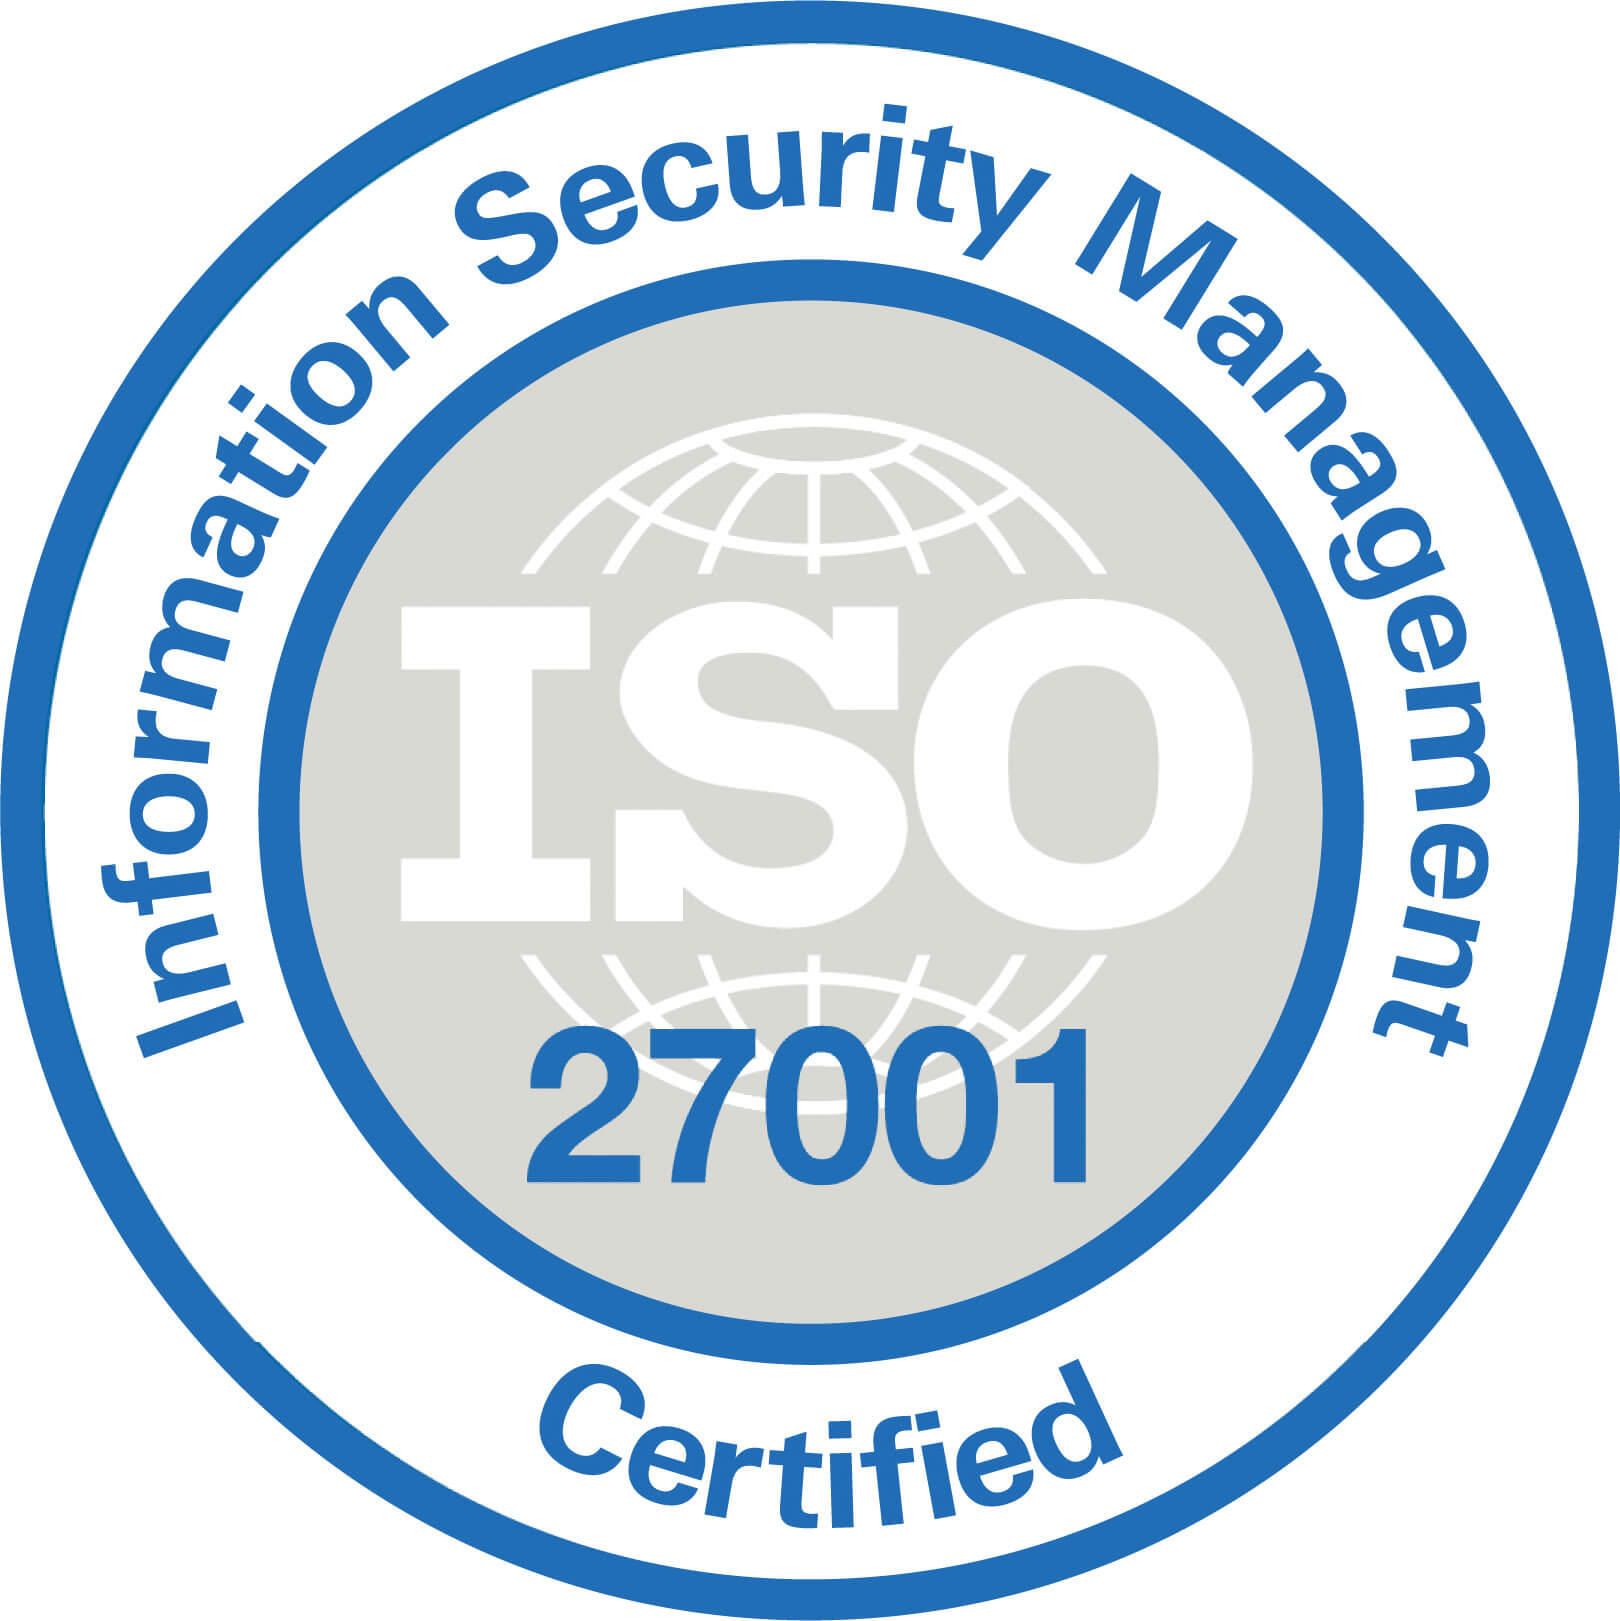 Information security management certified logo